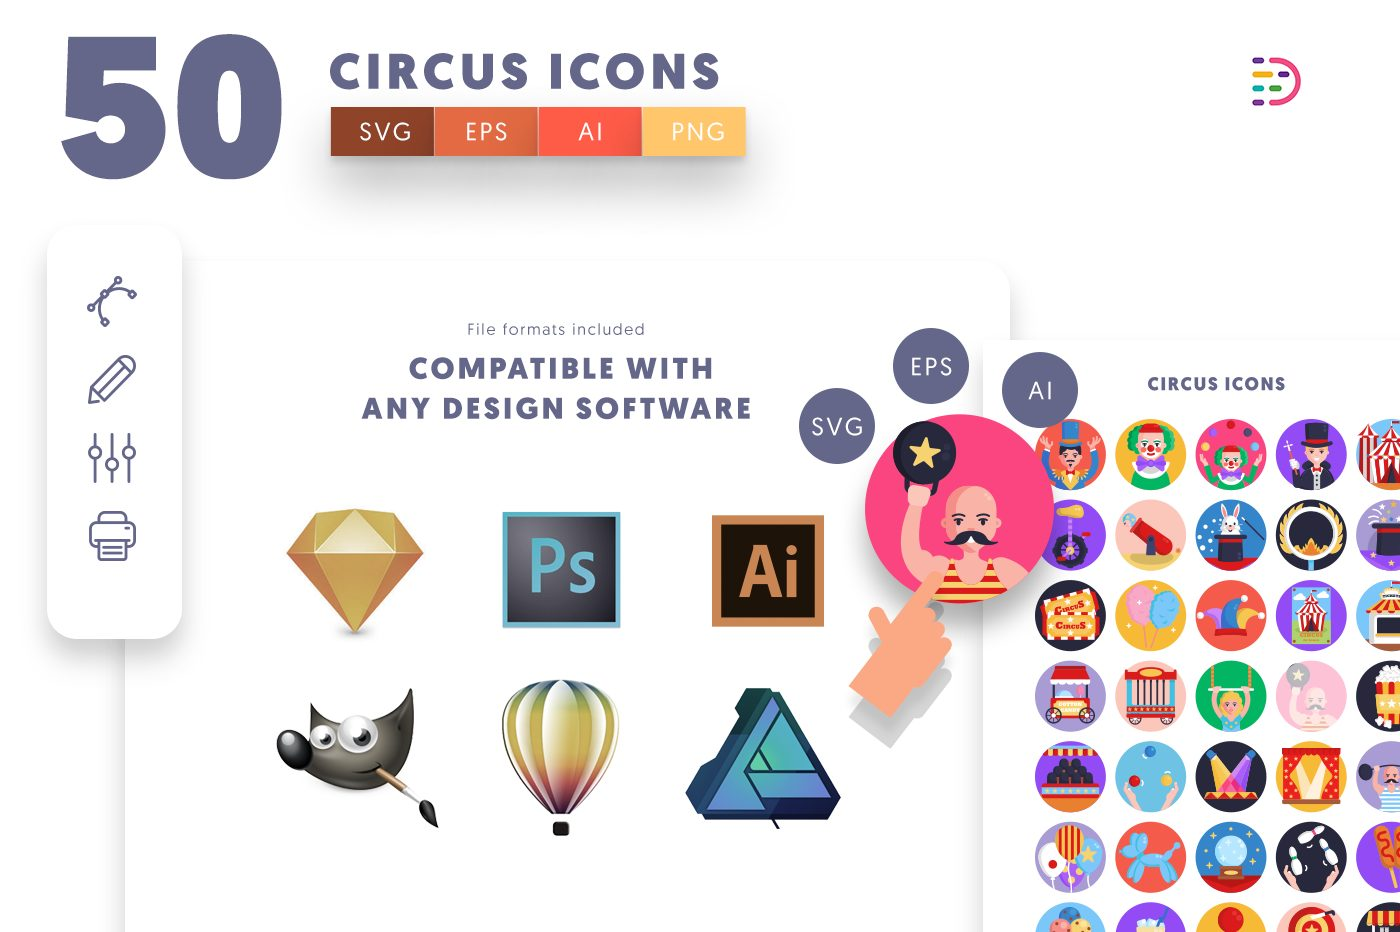 full vector 50 Circus Icons EPS, SVG, PNG